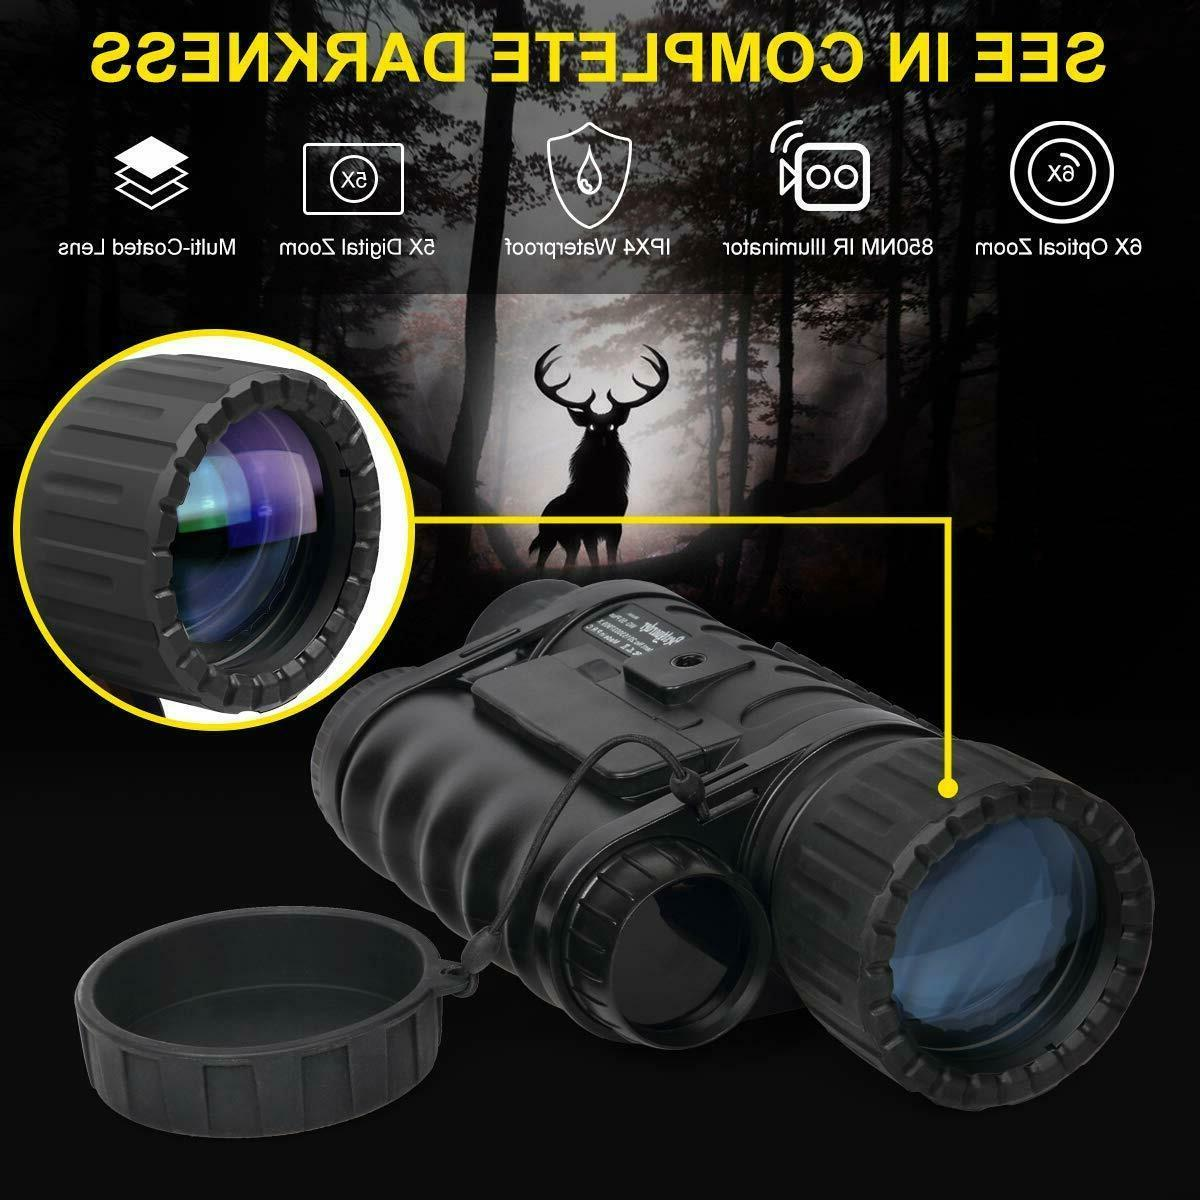 Infrared HD Night Vision Monocular WiFi,Bestguarder Plus,6-30X50MM Sm